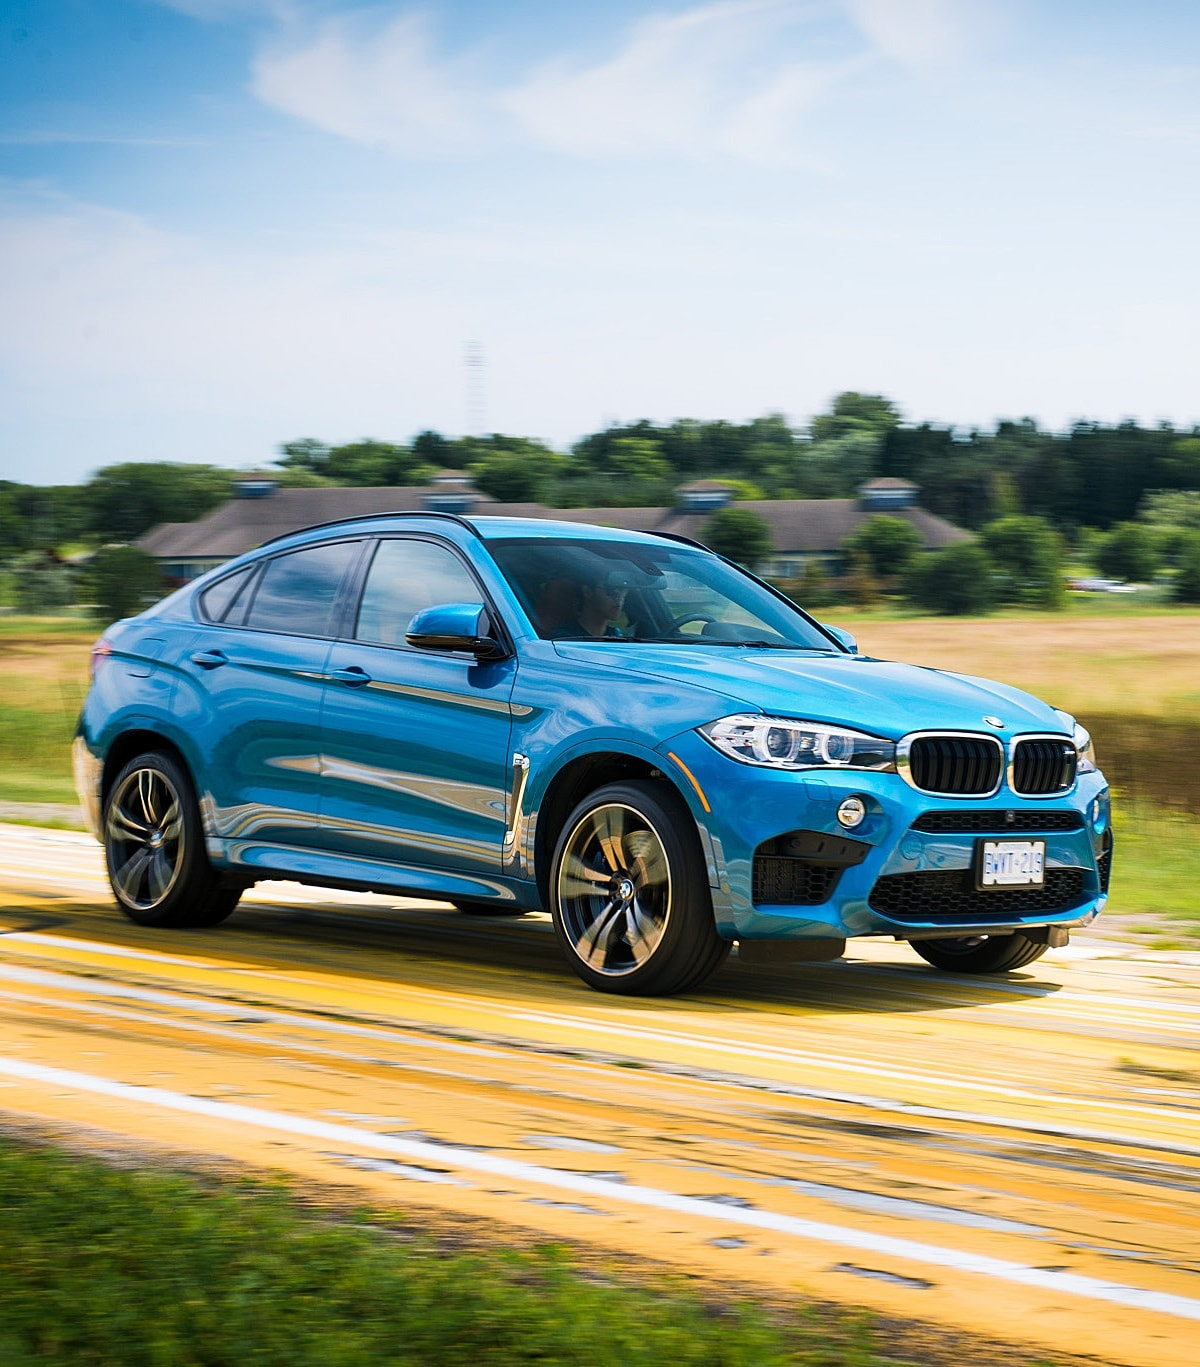 BMW X6 M (F86) For mobile